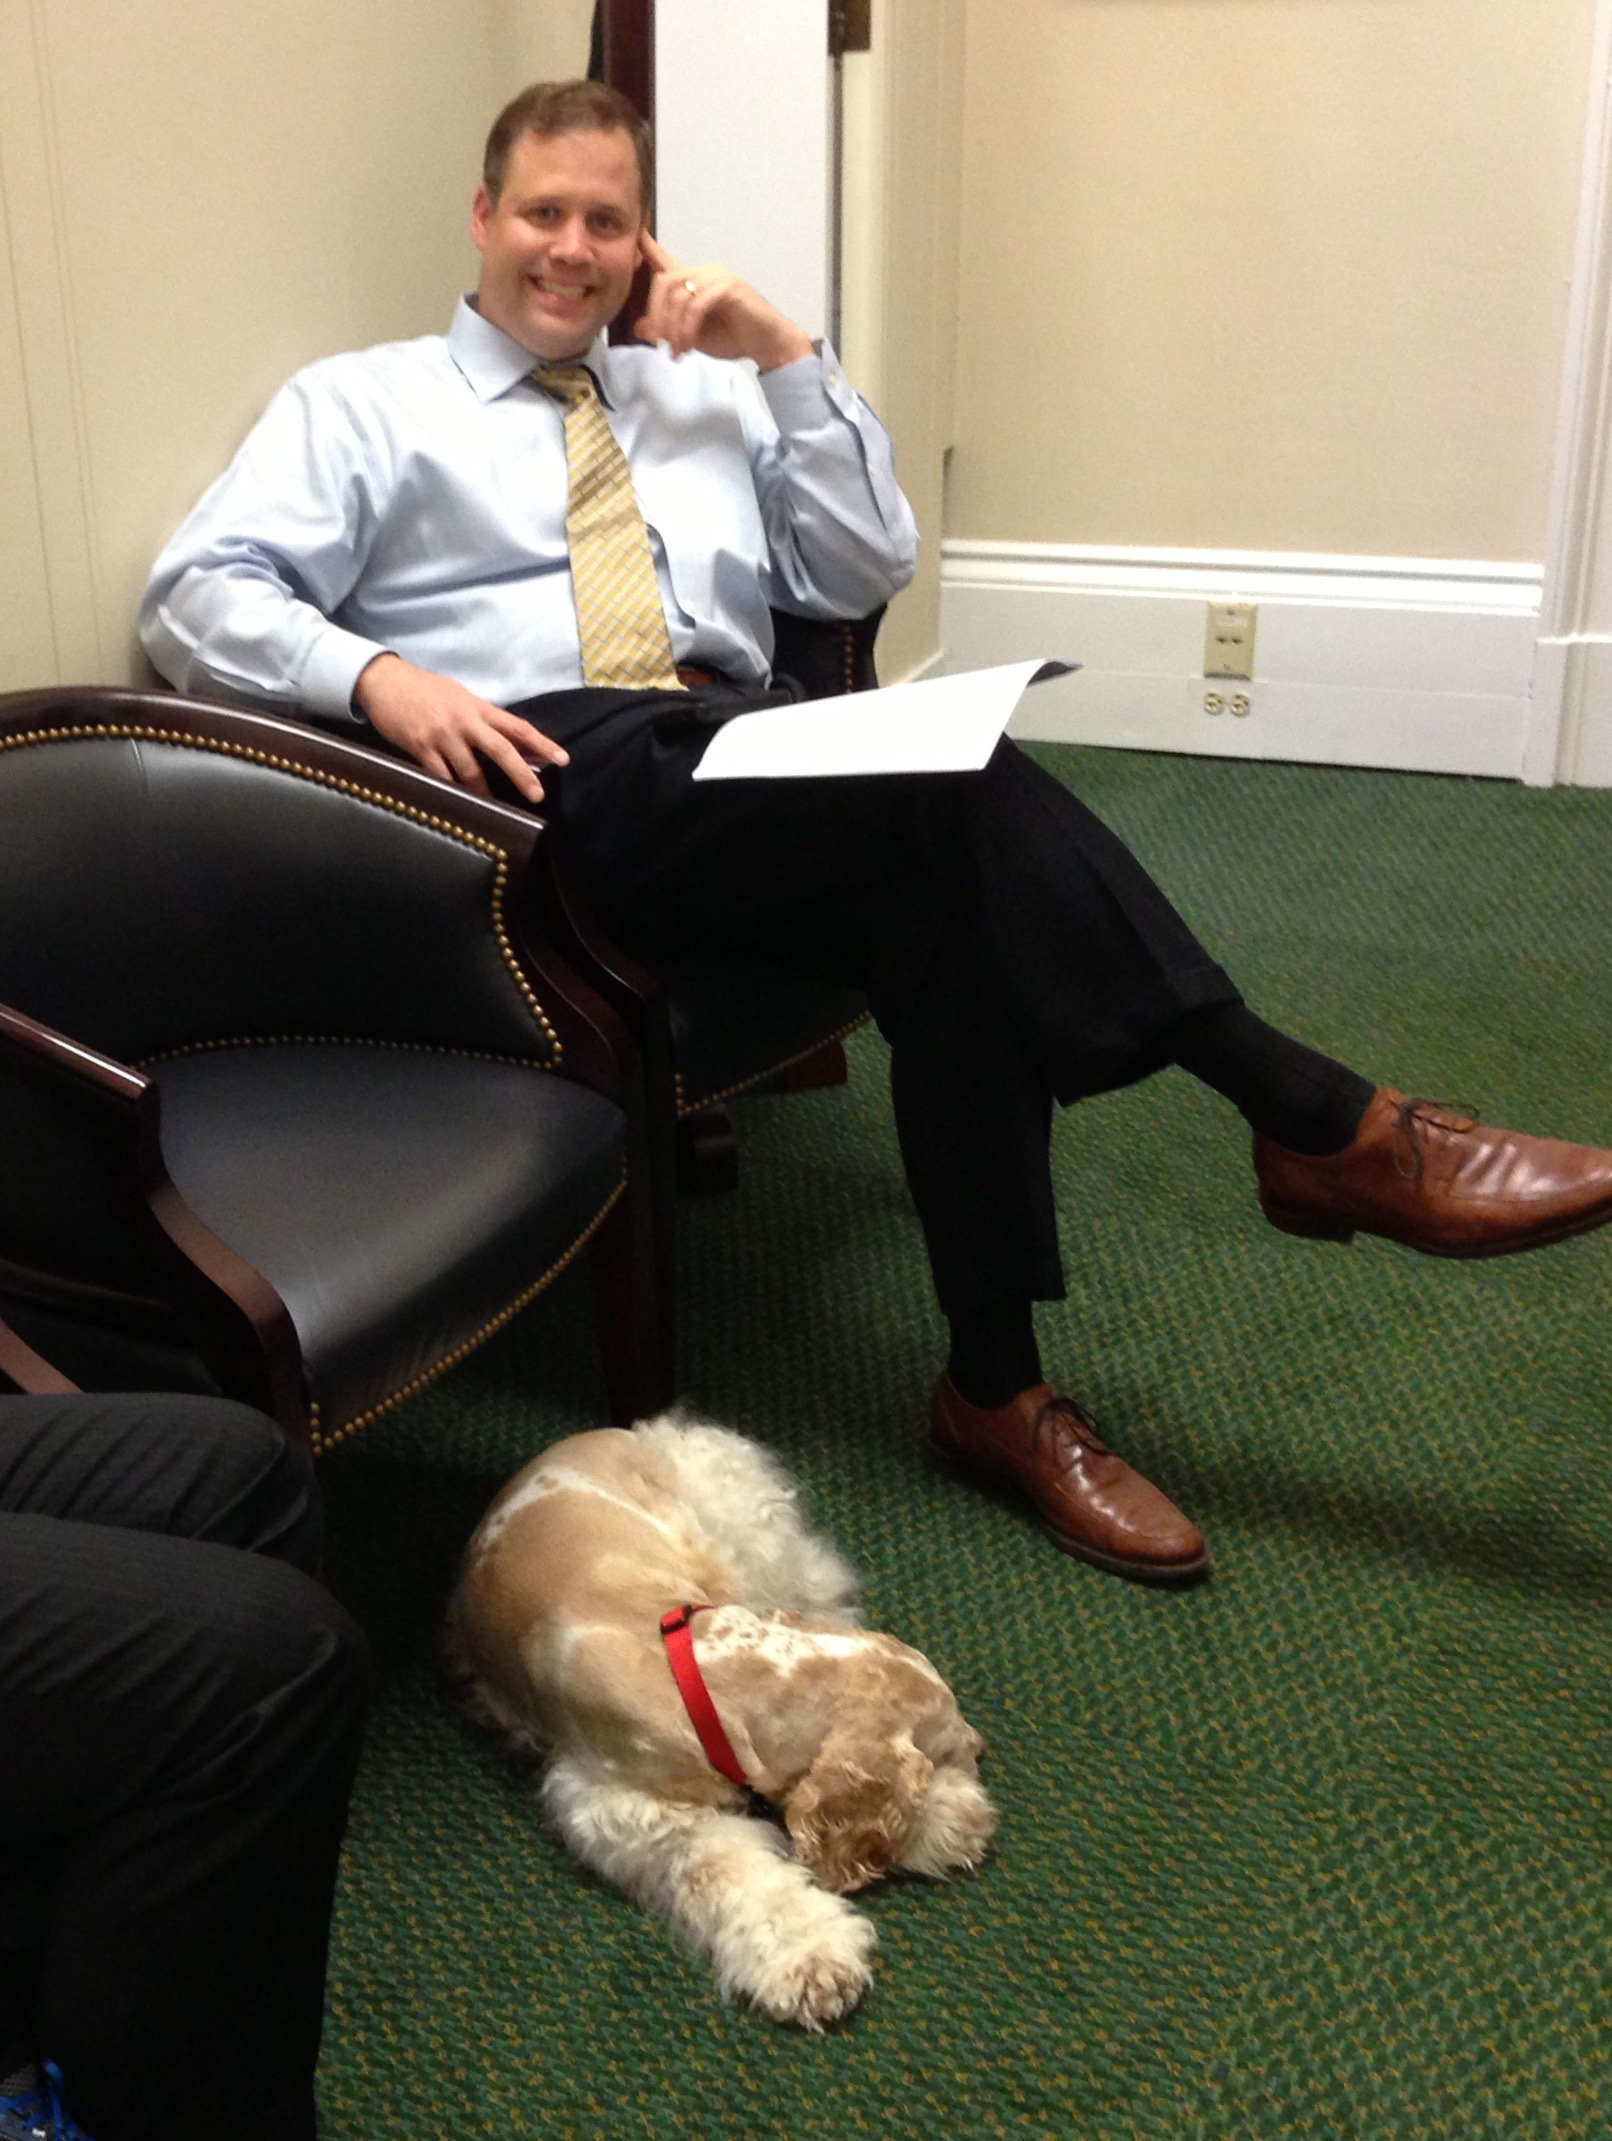 Oliver hangs out with the congressman while he works in his office. (Courtesy of Bridenstine's office)